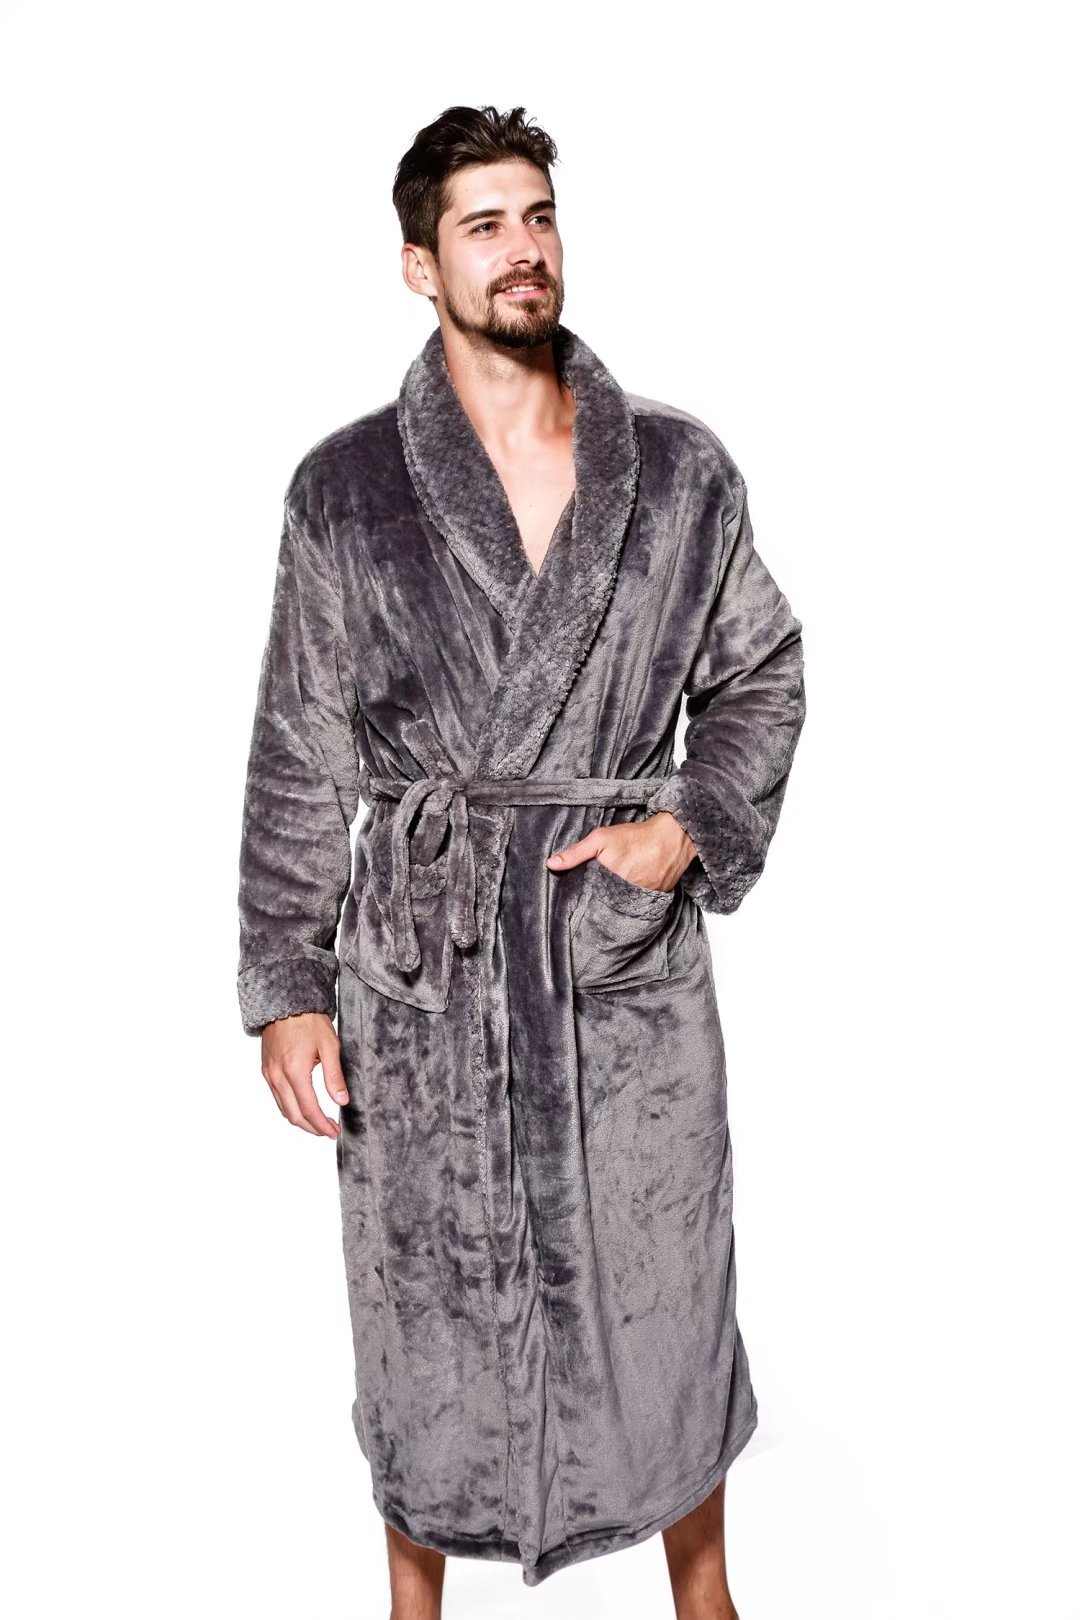 YOUAREFACNY 2018 New Arrival Full Length Big & Tall Robes,Long Cotton Bathrobes Terry Kimono Grey XL